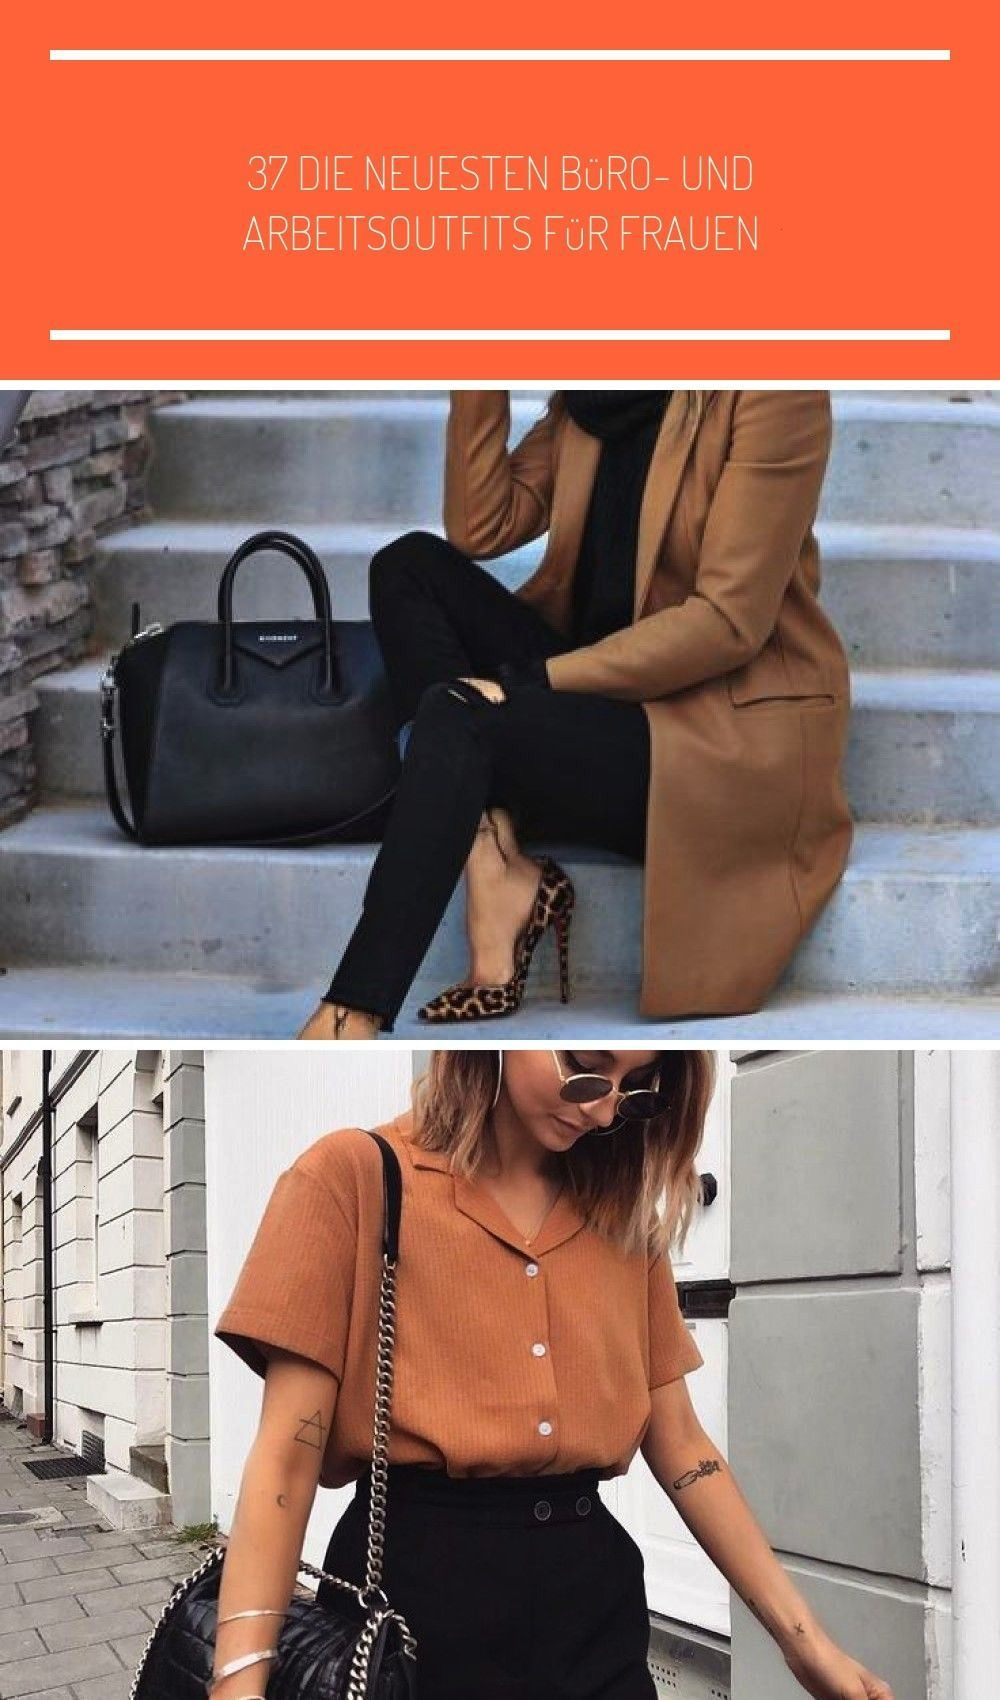 #arbeitsoutfits #photooftheday #picoftheday #instagood #beautiful #neuesten #followme #fashion #dres...